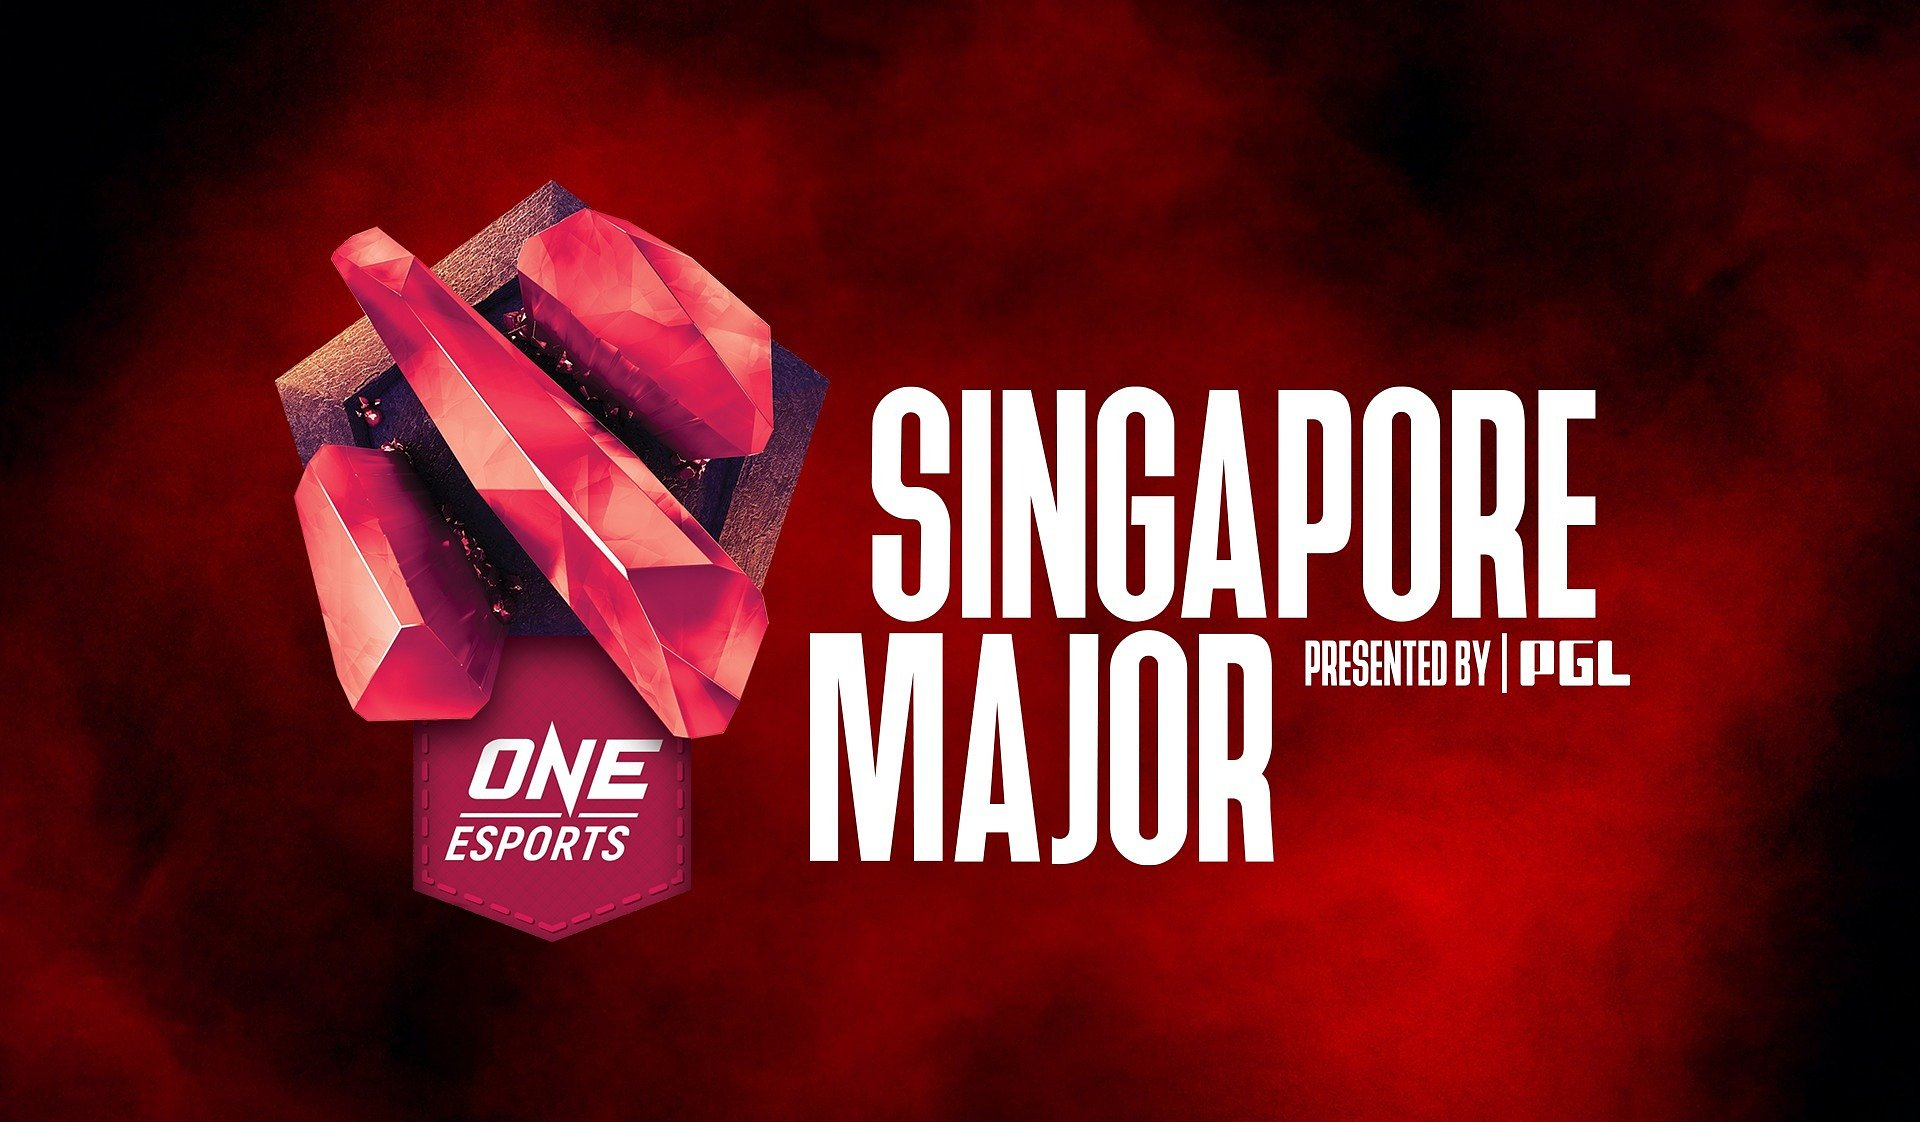 Singapore Dota 2 Major to be hosted by PGL in March 2021